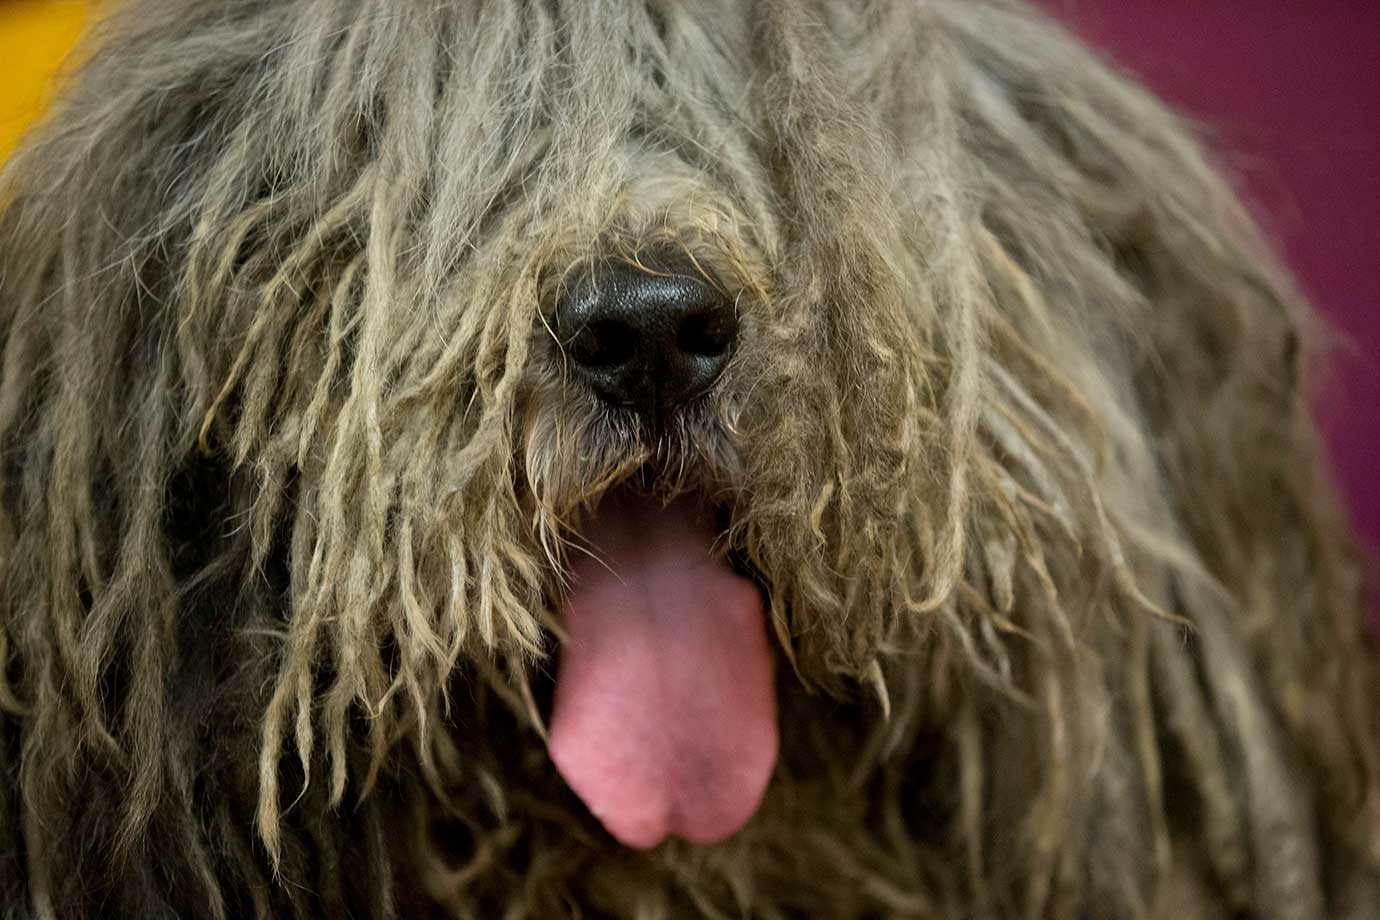 Here are some of the images that caught our eye on the sports night of Feb. 15, beginning with Viggo, a Bergamasco, waiting to compete in the 140th Westminster Kennel Club dog show at Madison Square Garden.